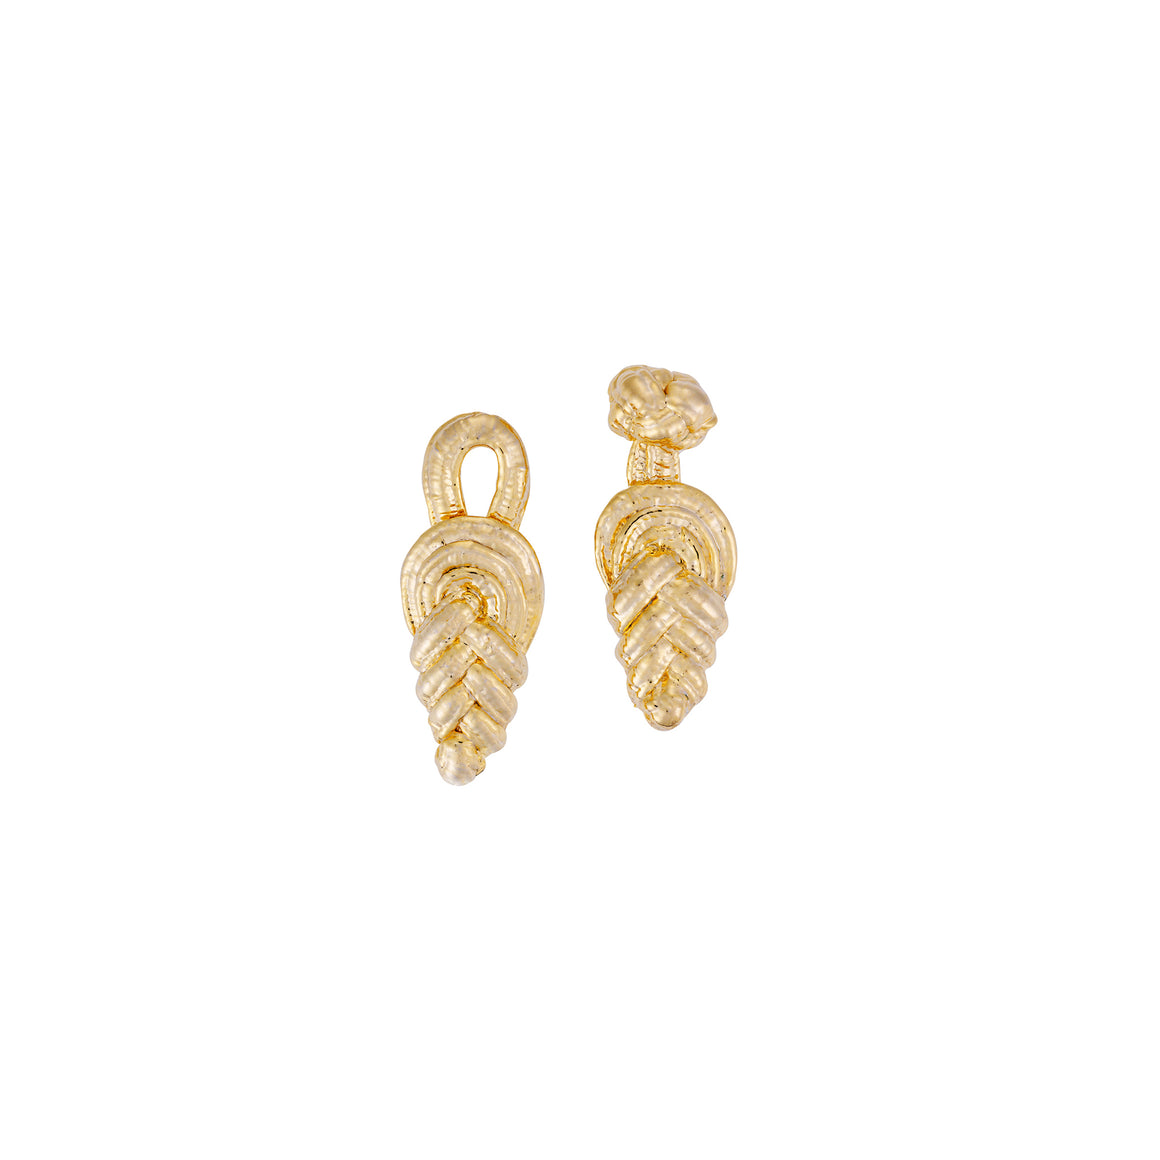 Knot earrings-gold-designed by alexandra koumba